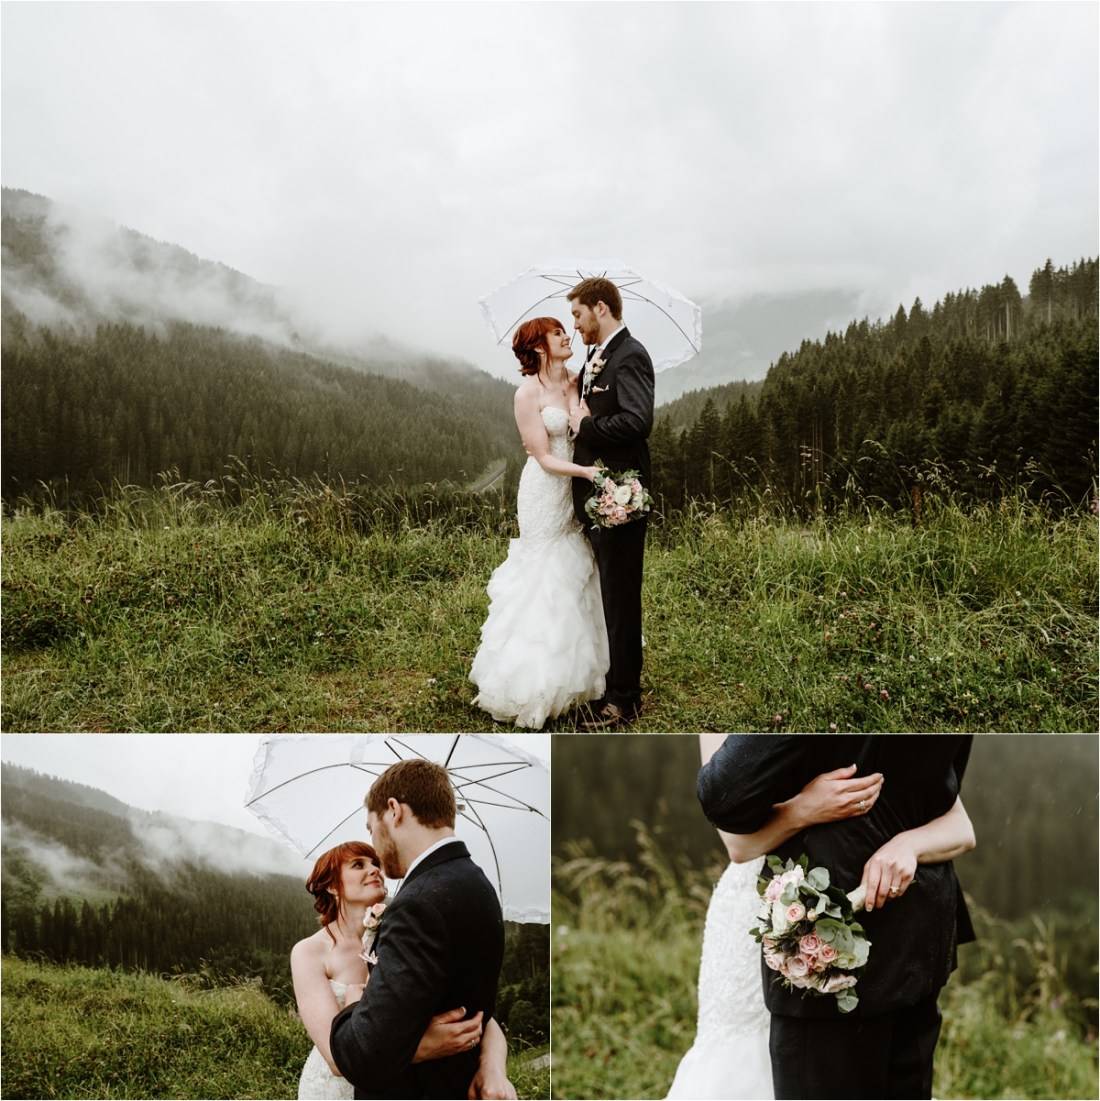 Mountain weddings pictures in the rain in Gerlos, Austria. Photos by Wild Connections Photography